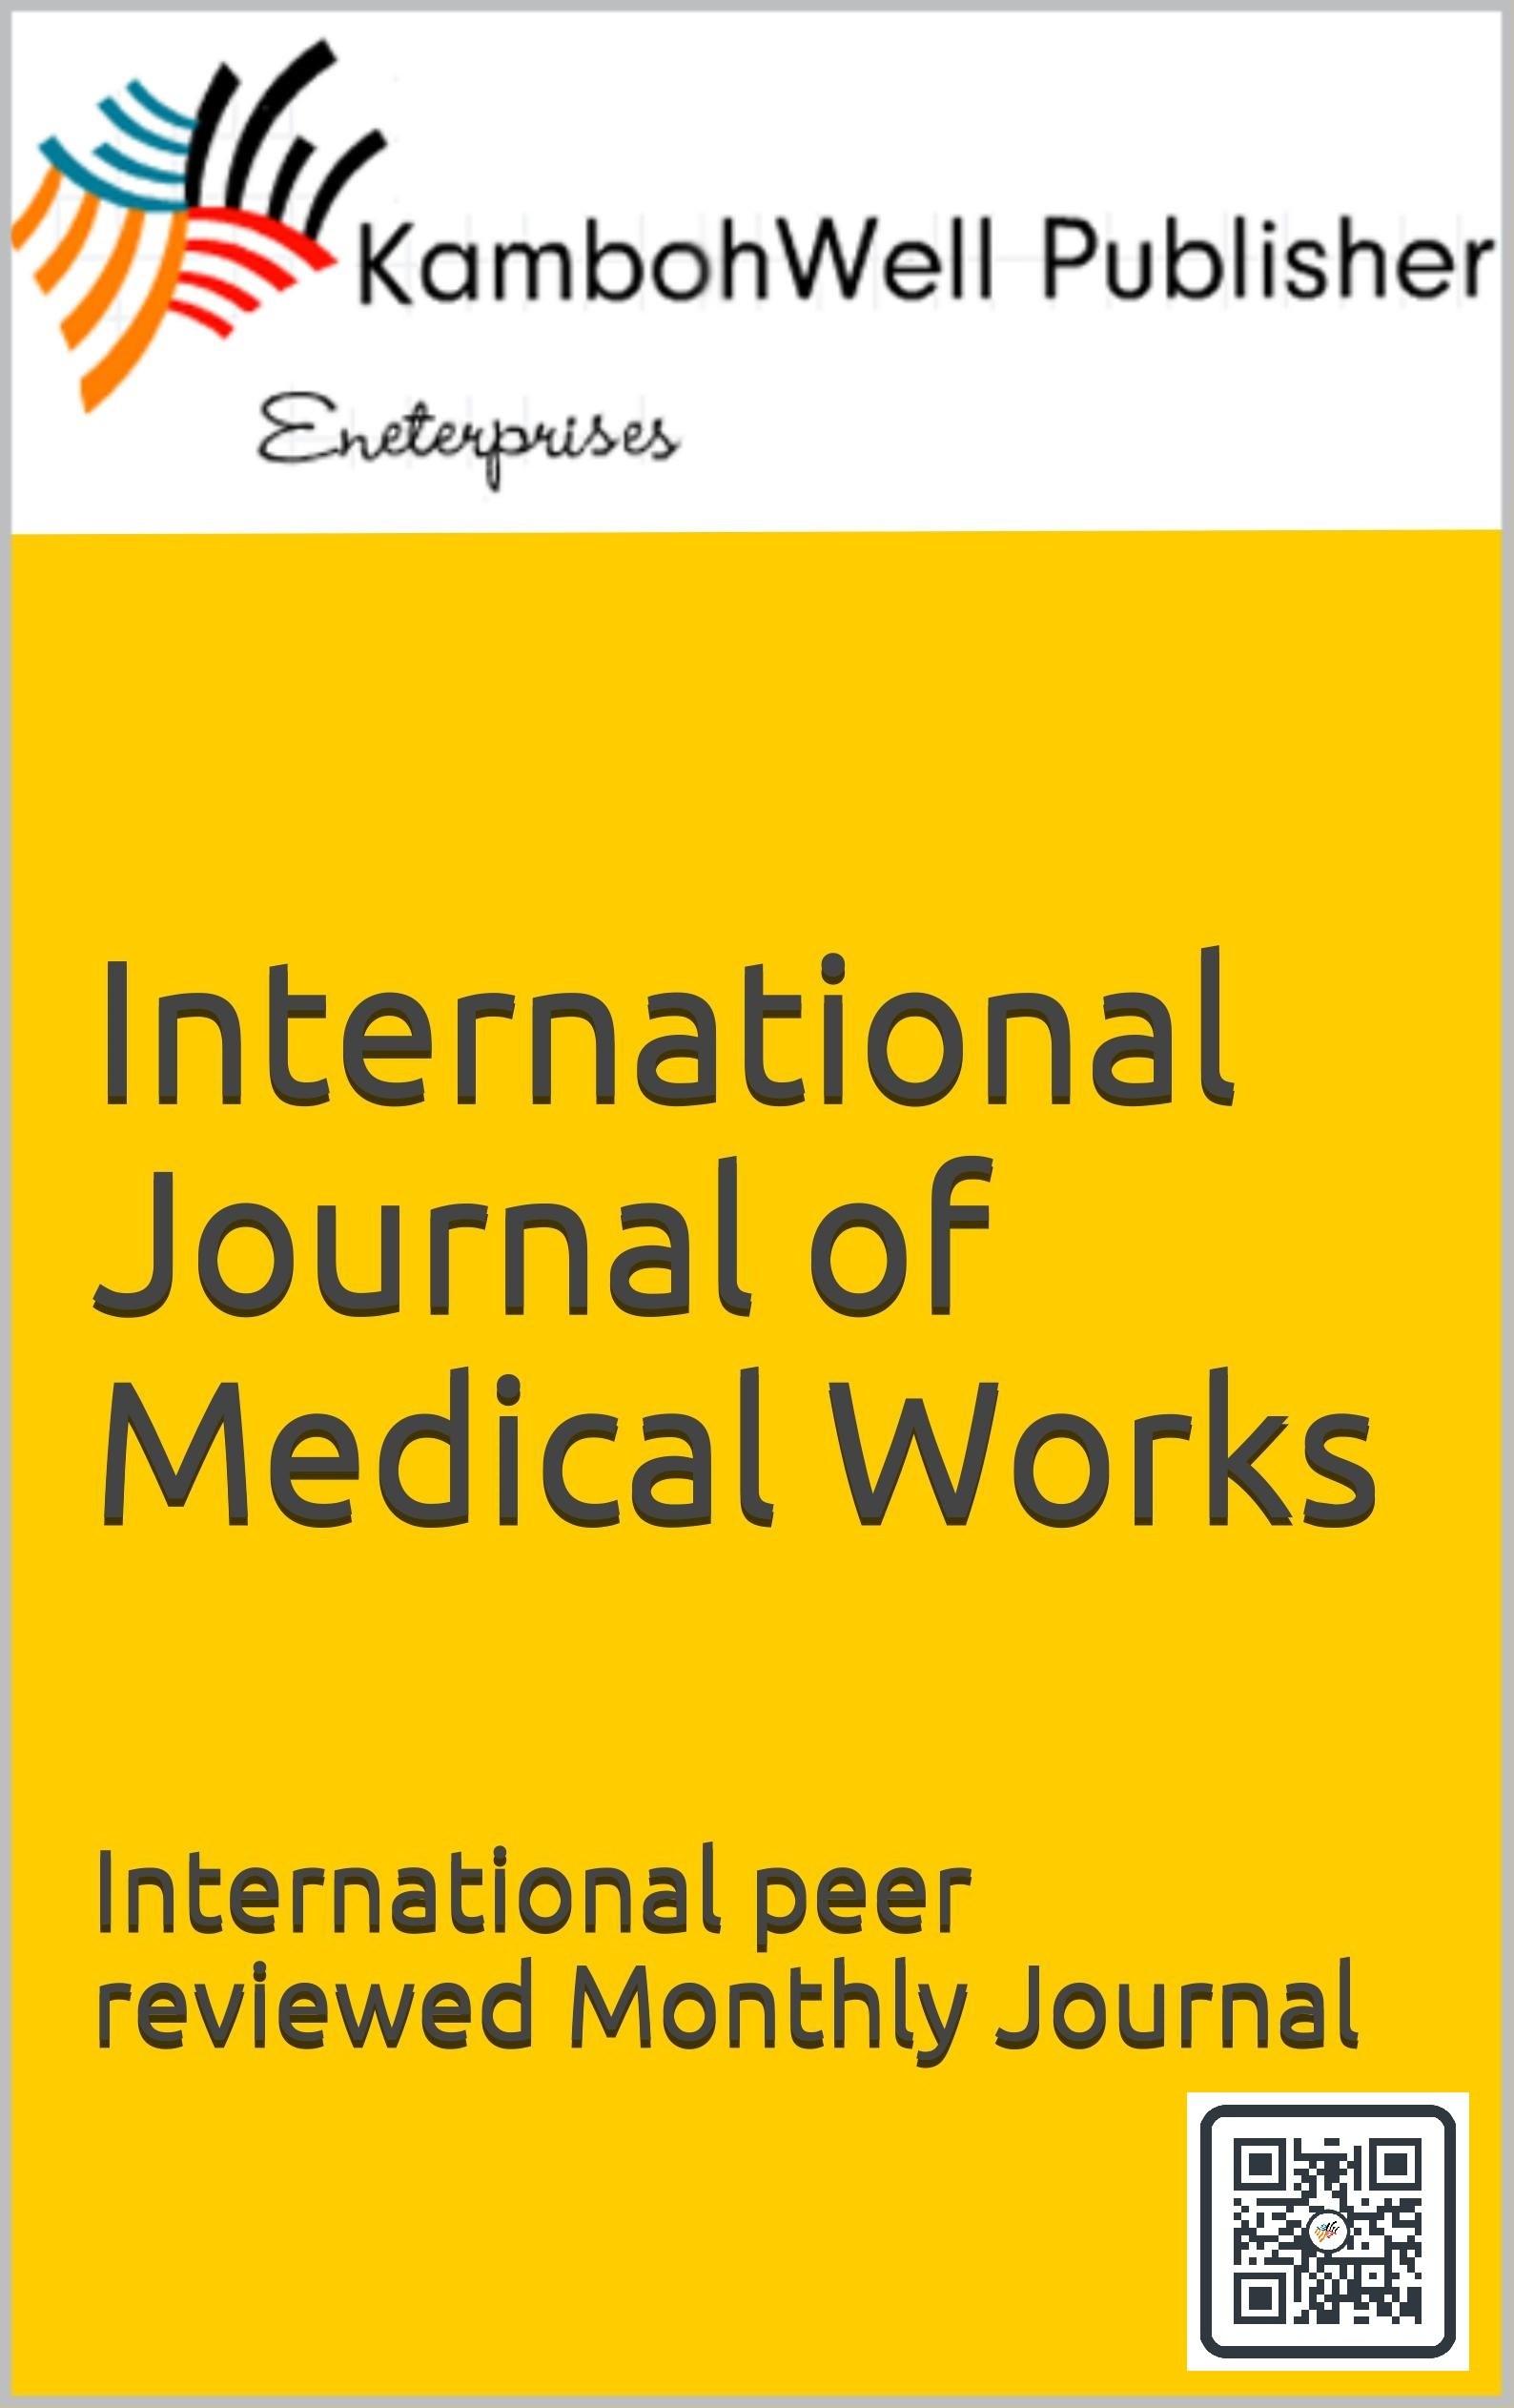 International Journal of Medical Works